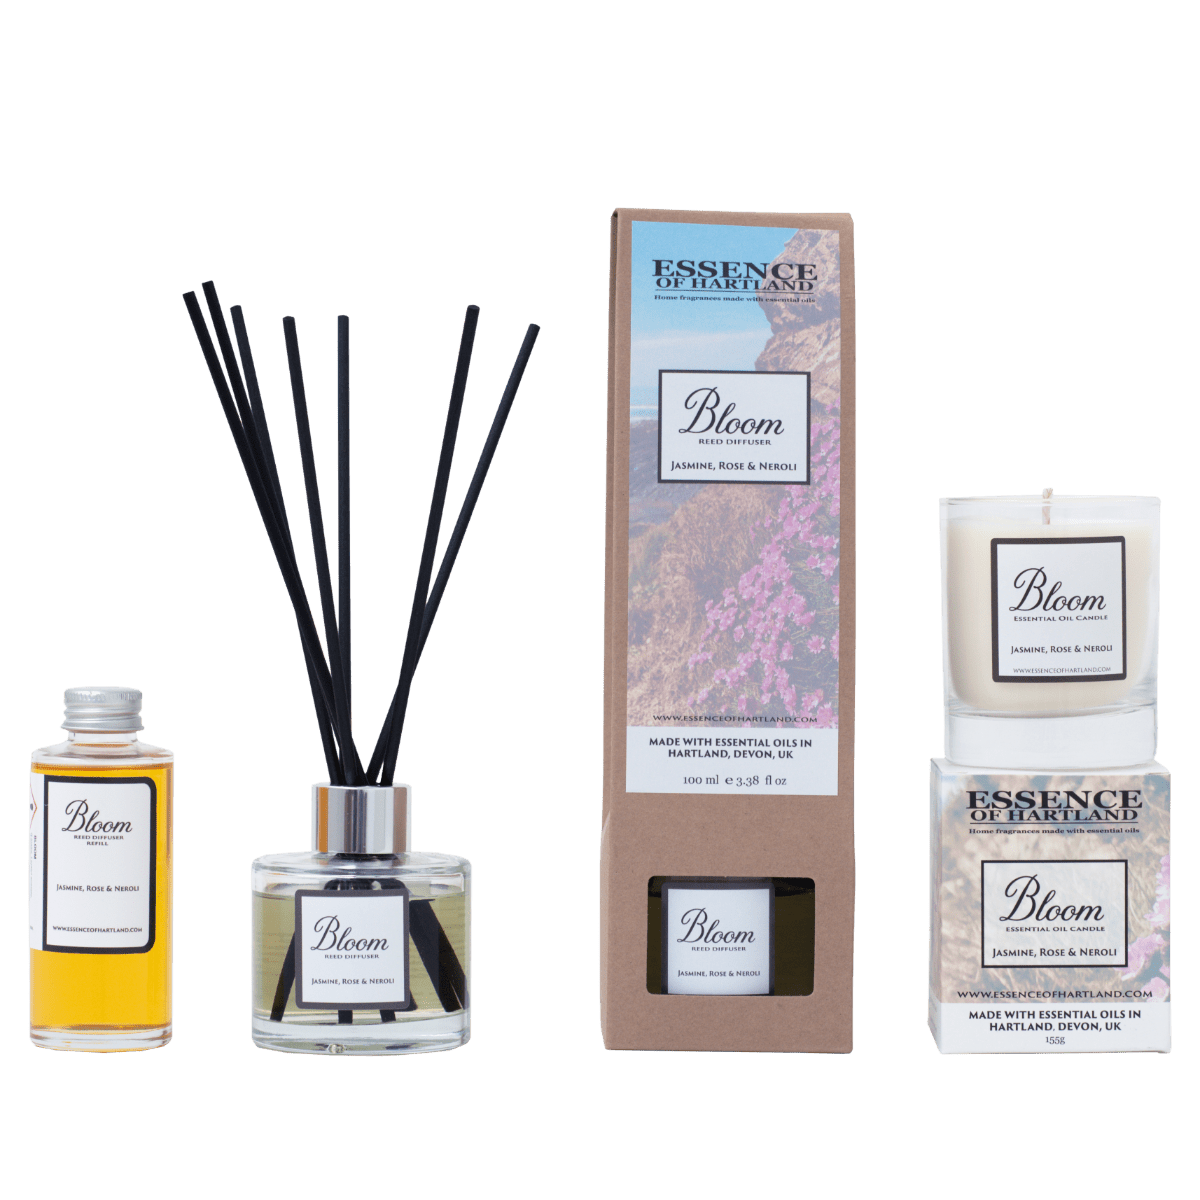 A group of Bloom products. A glass bottle of Bloom refill on the right, then a glass diffuser bottle of Bloom with black fibre reeds, in the middle the diffuser box packaging detailing the name of the product and image of flowers on cliffs looking down to Welcombe Beach, a similar image is on the box packaging for the candle on the right hand side with the candle sat on top.